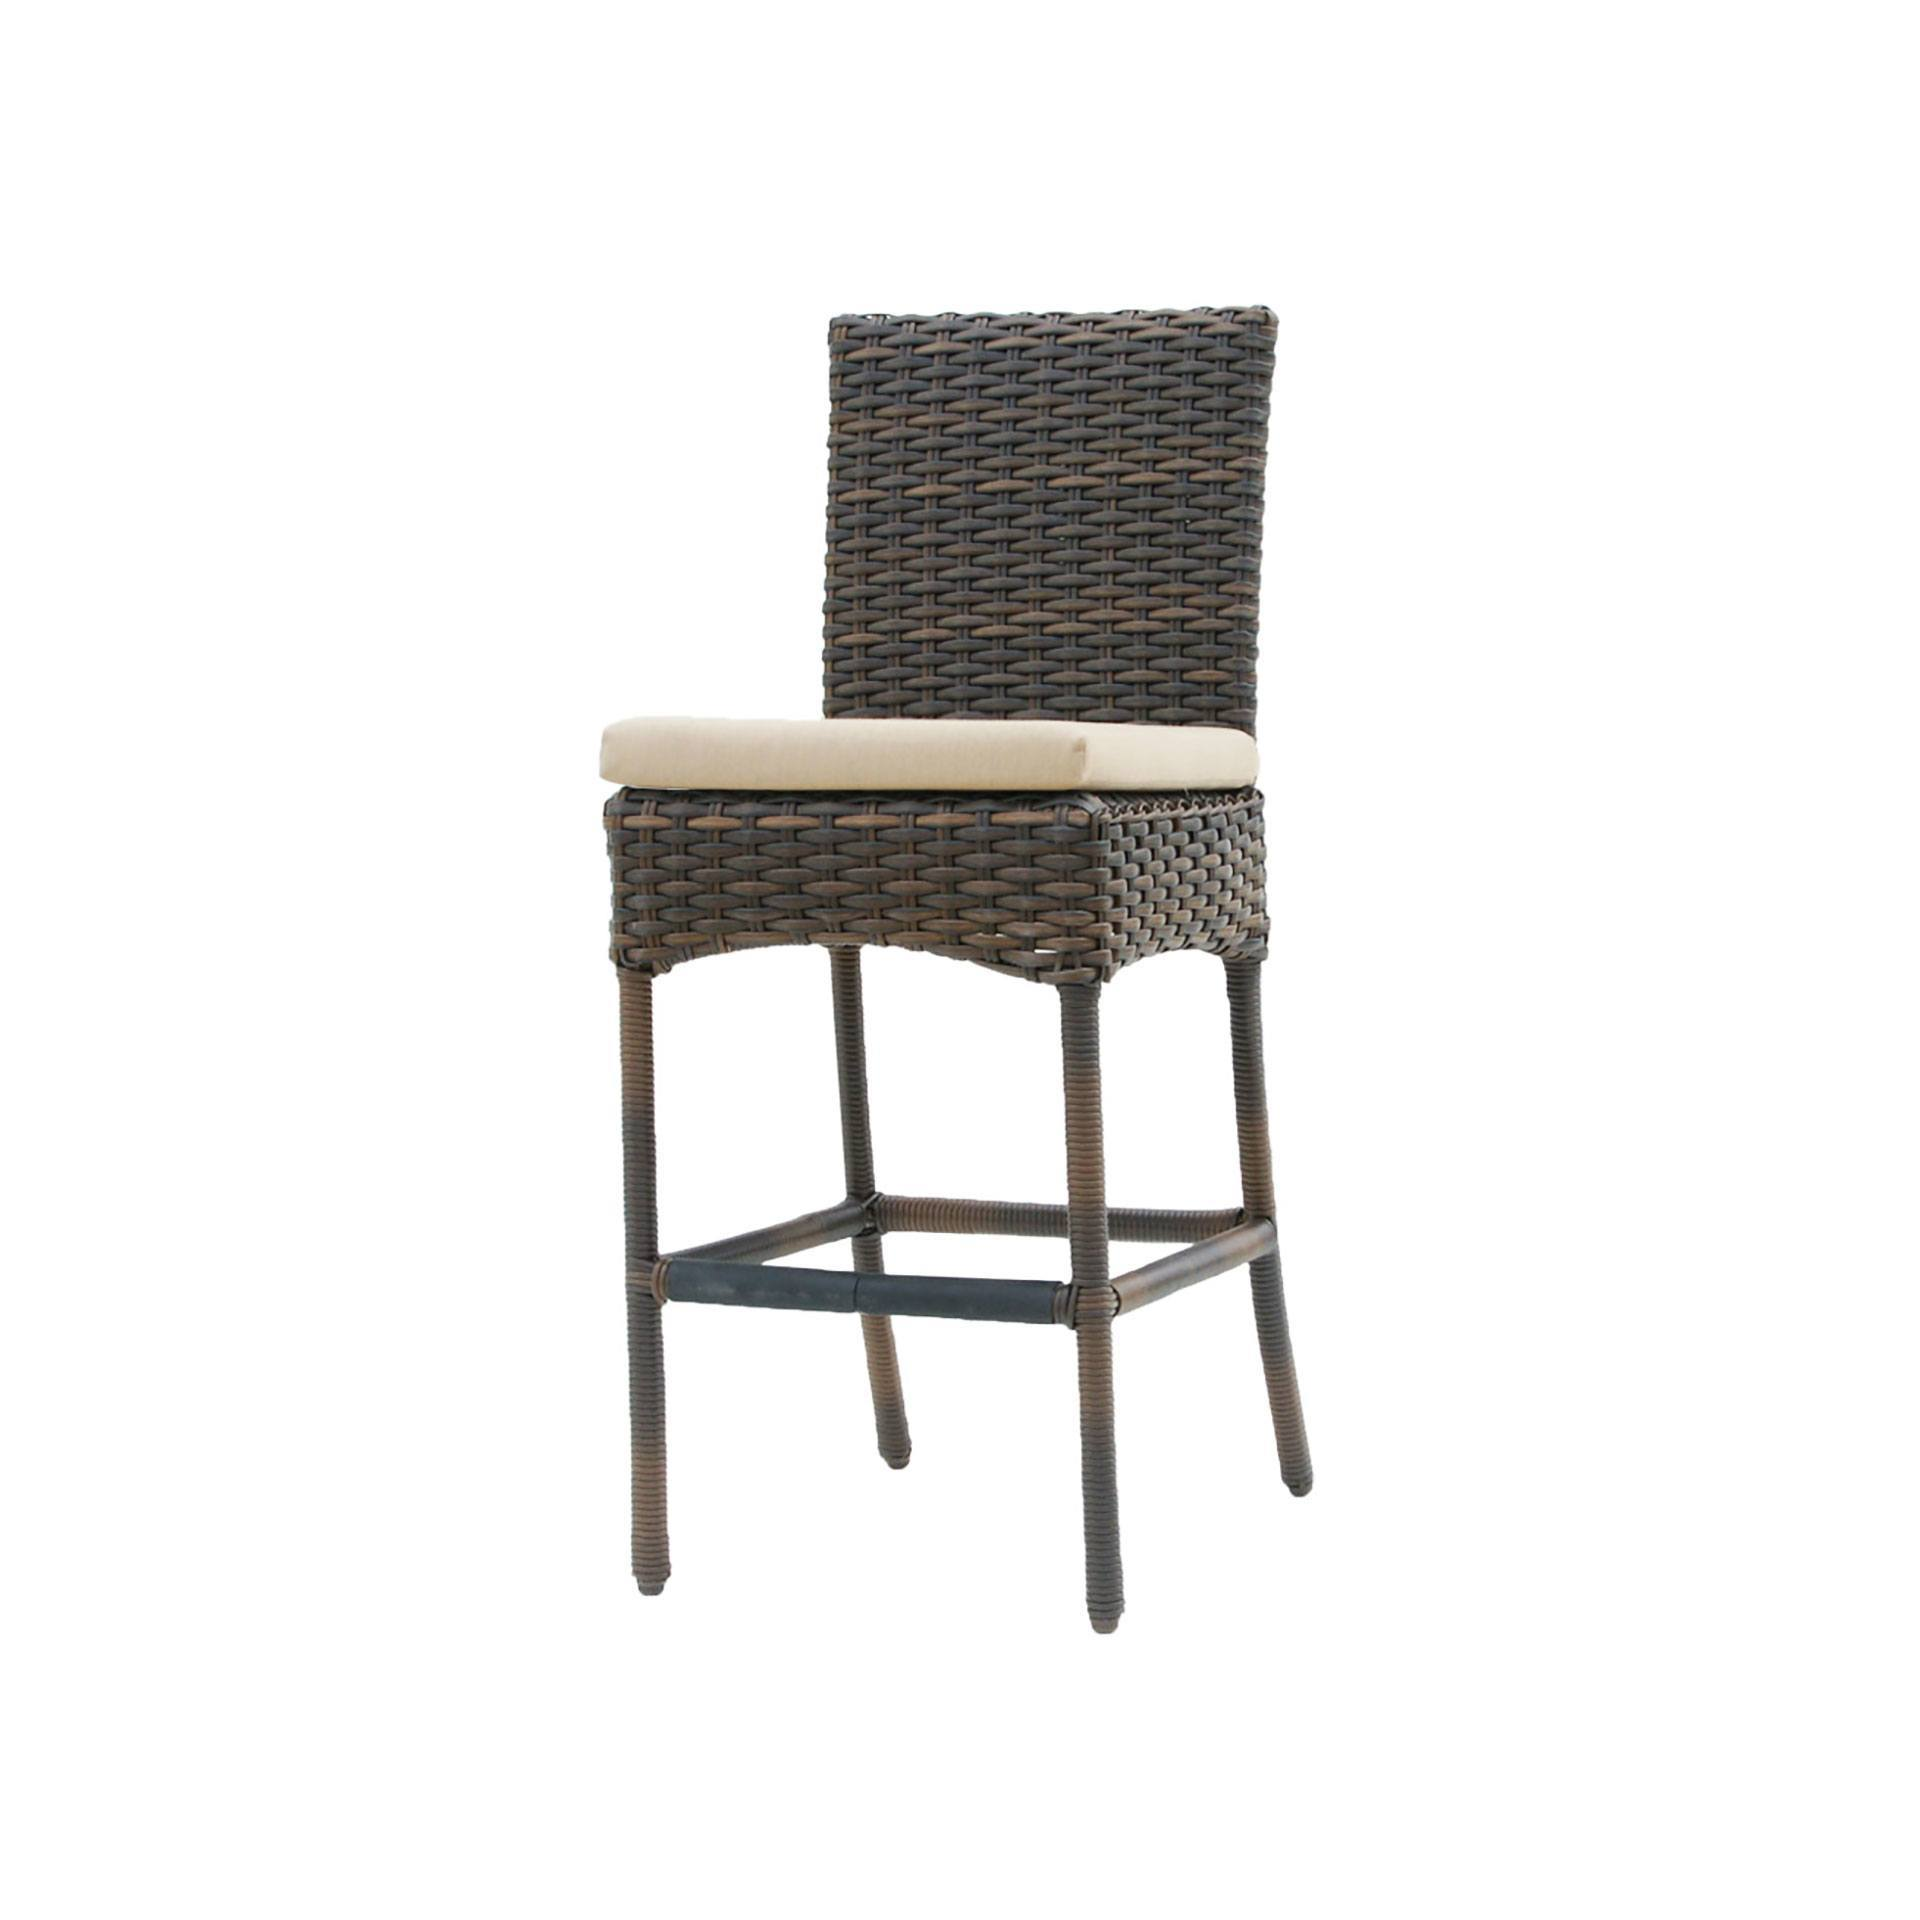 Ratana Portfino Bar Stool Leisure Living